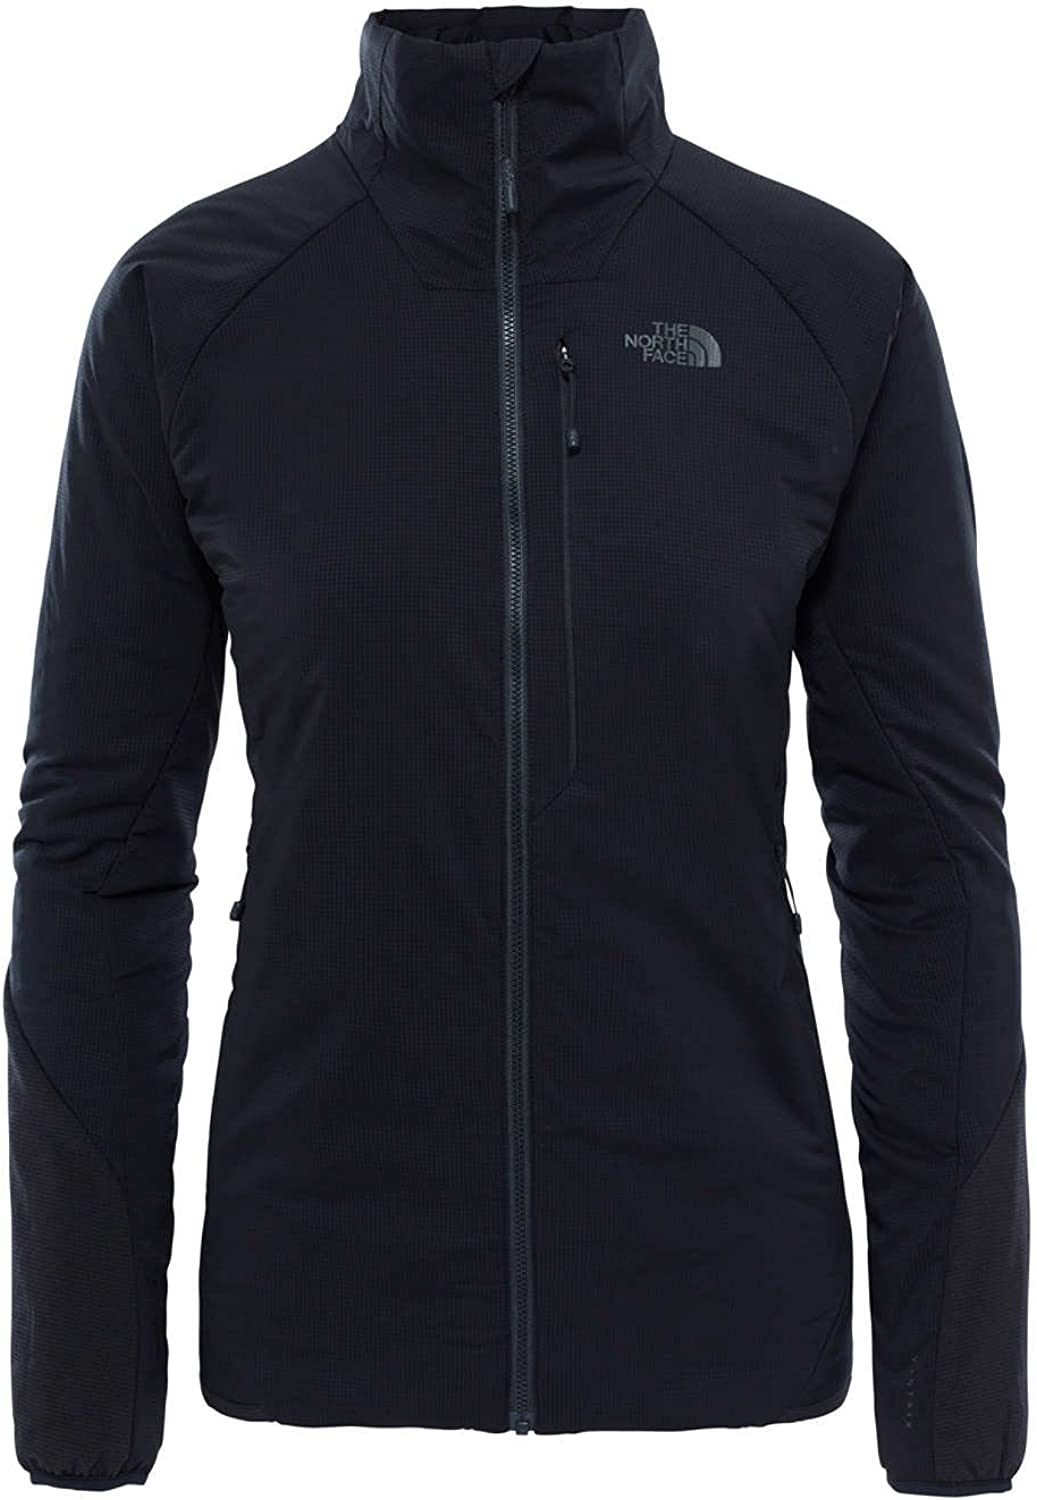 The North Face Ventrix Jacket  Women's